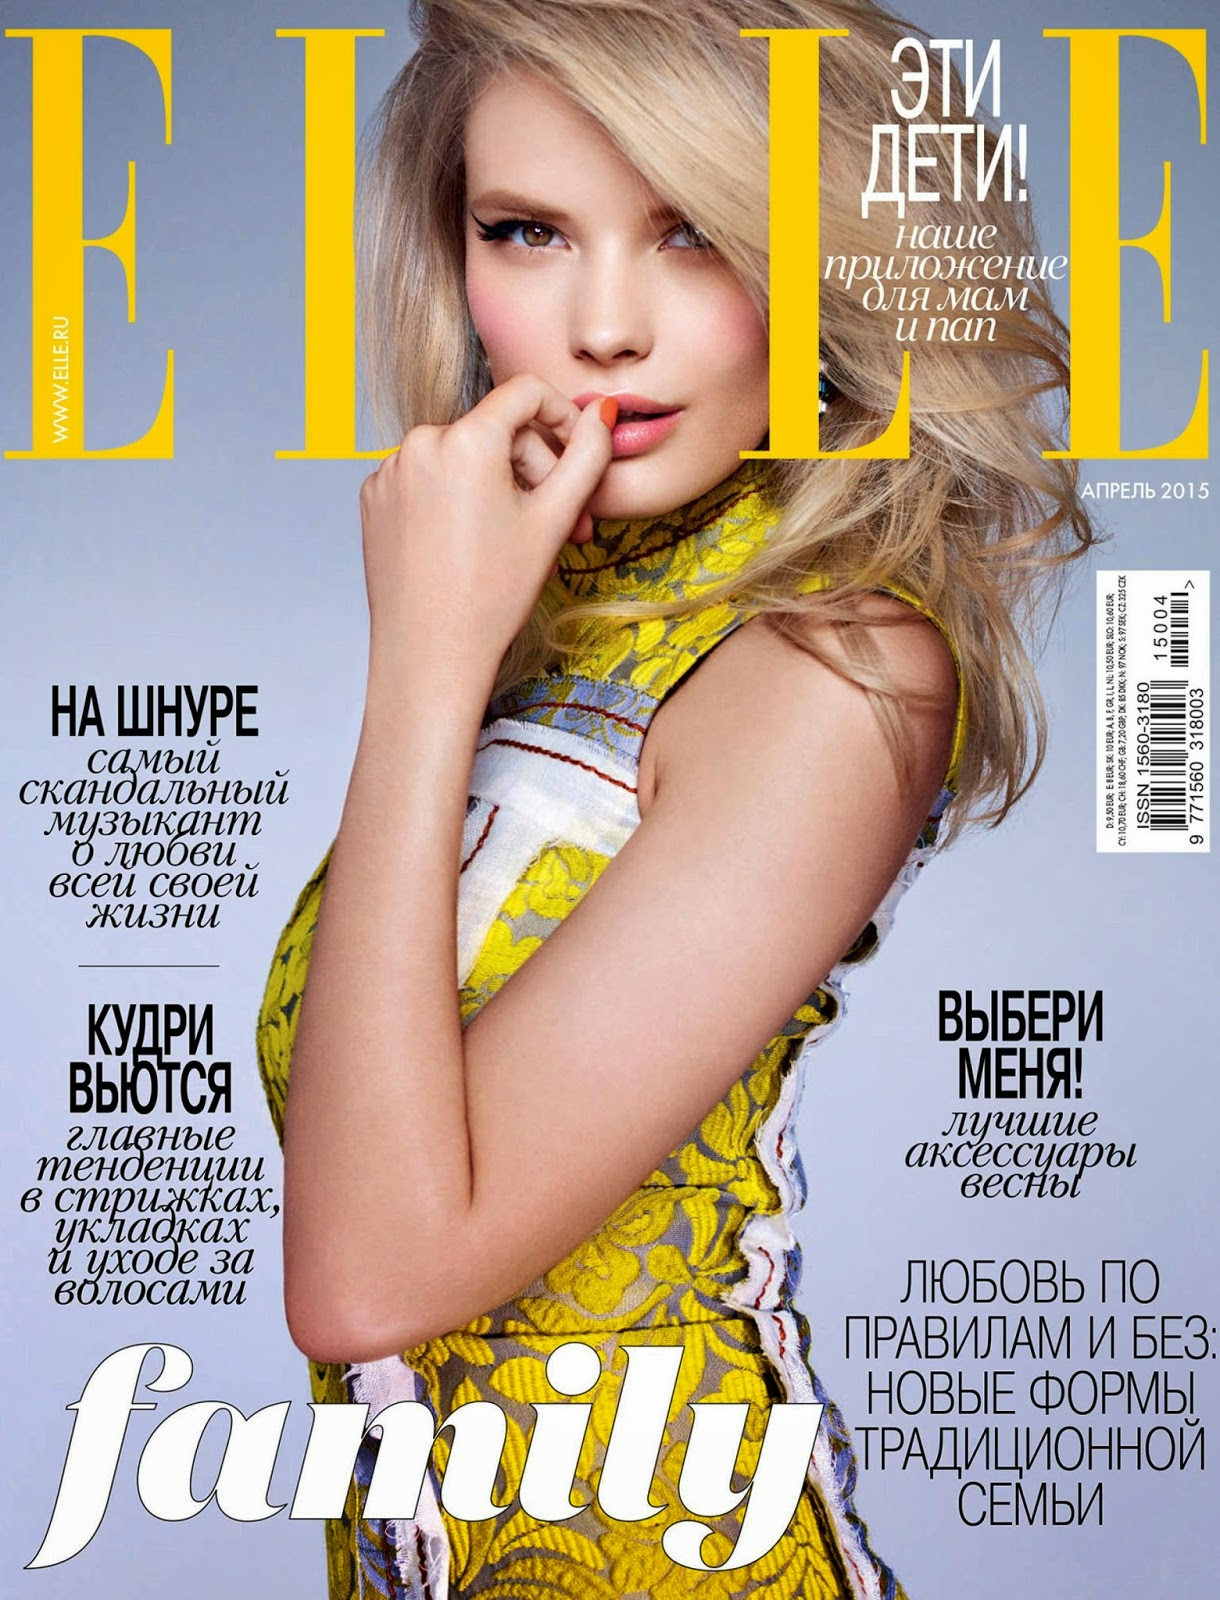 Fashion Model @ Alena Blohm - Elle Russia, April 2015